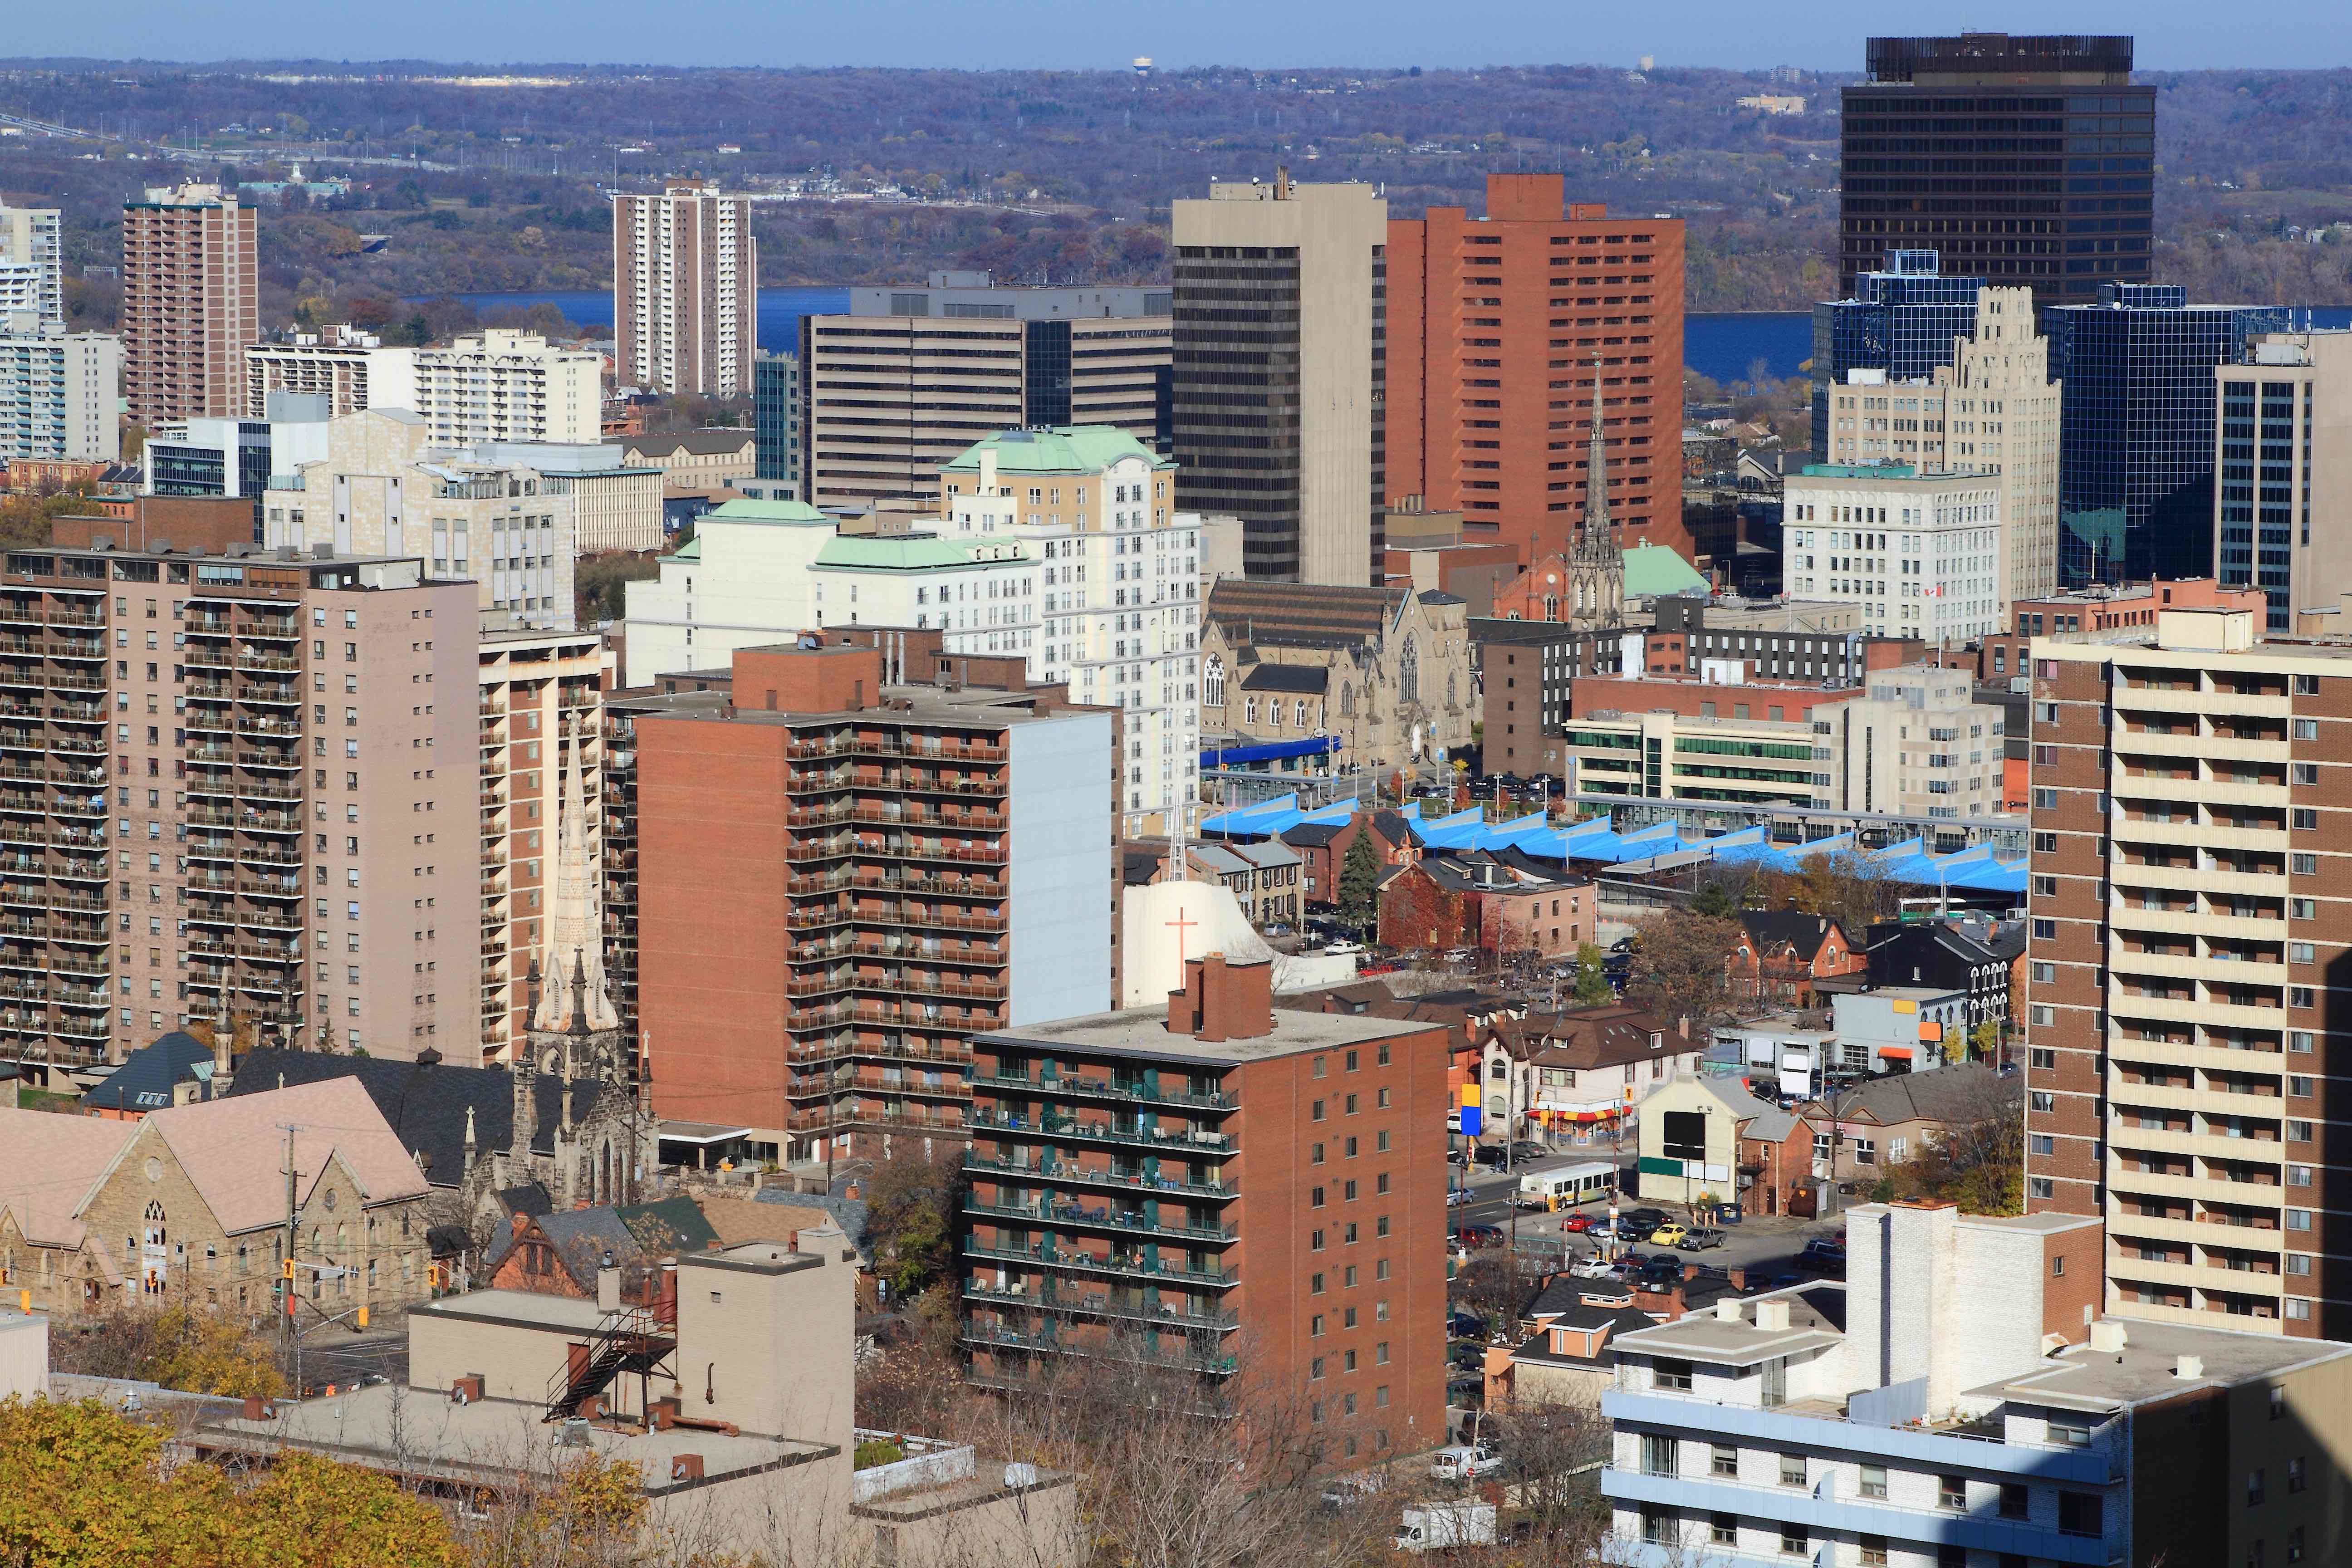 Skyline of Hamilton, Ontario